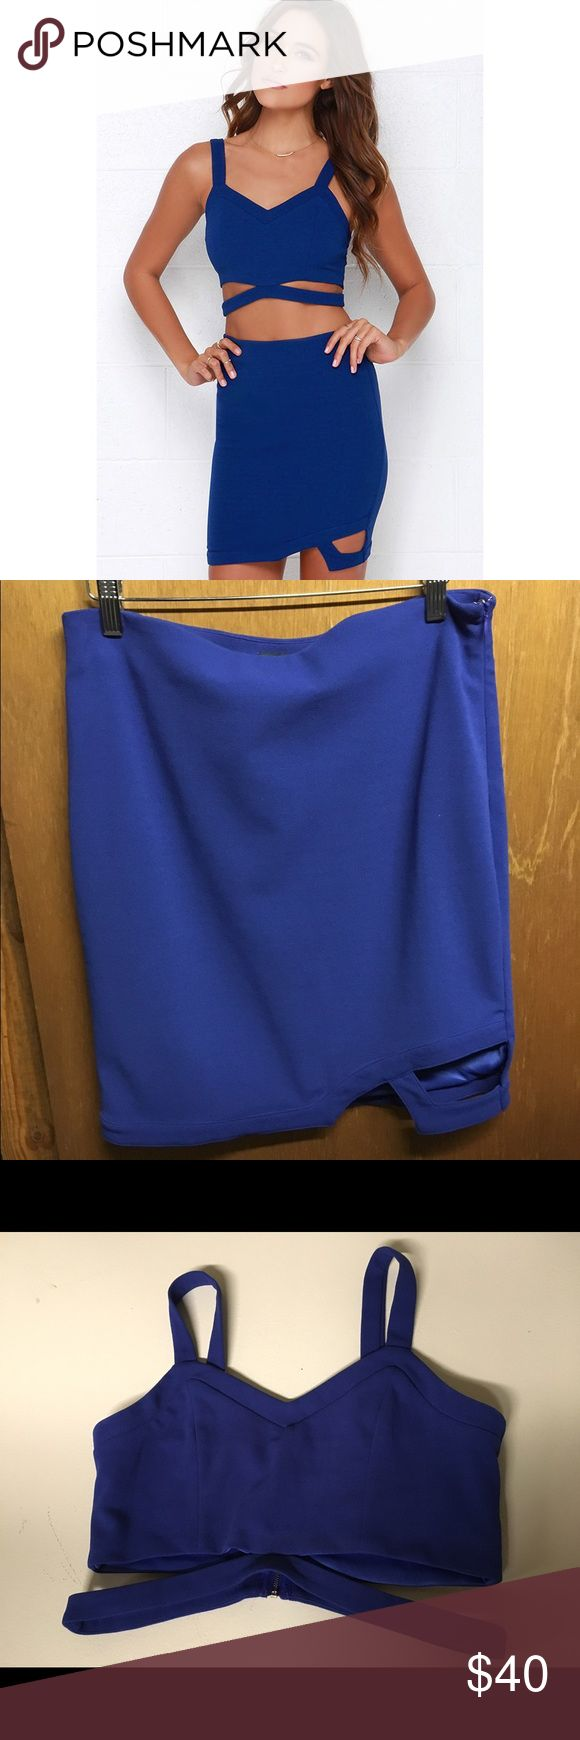 Lulu*s Royal Blue Cut Out Two Piece Dress Worn once- in excellent condition. Zip up back on top & zip & clip on side on skirt. Cut out designs. Very cute for a night out! Lulu's Dresses Mini